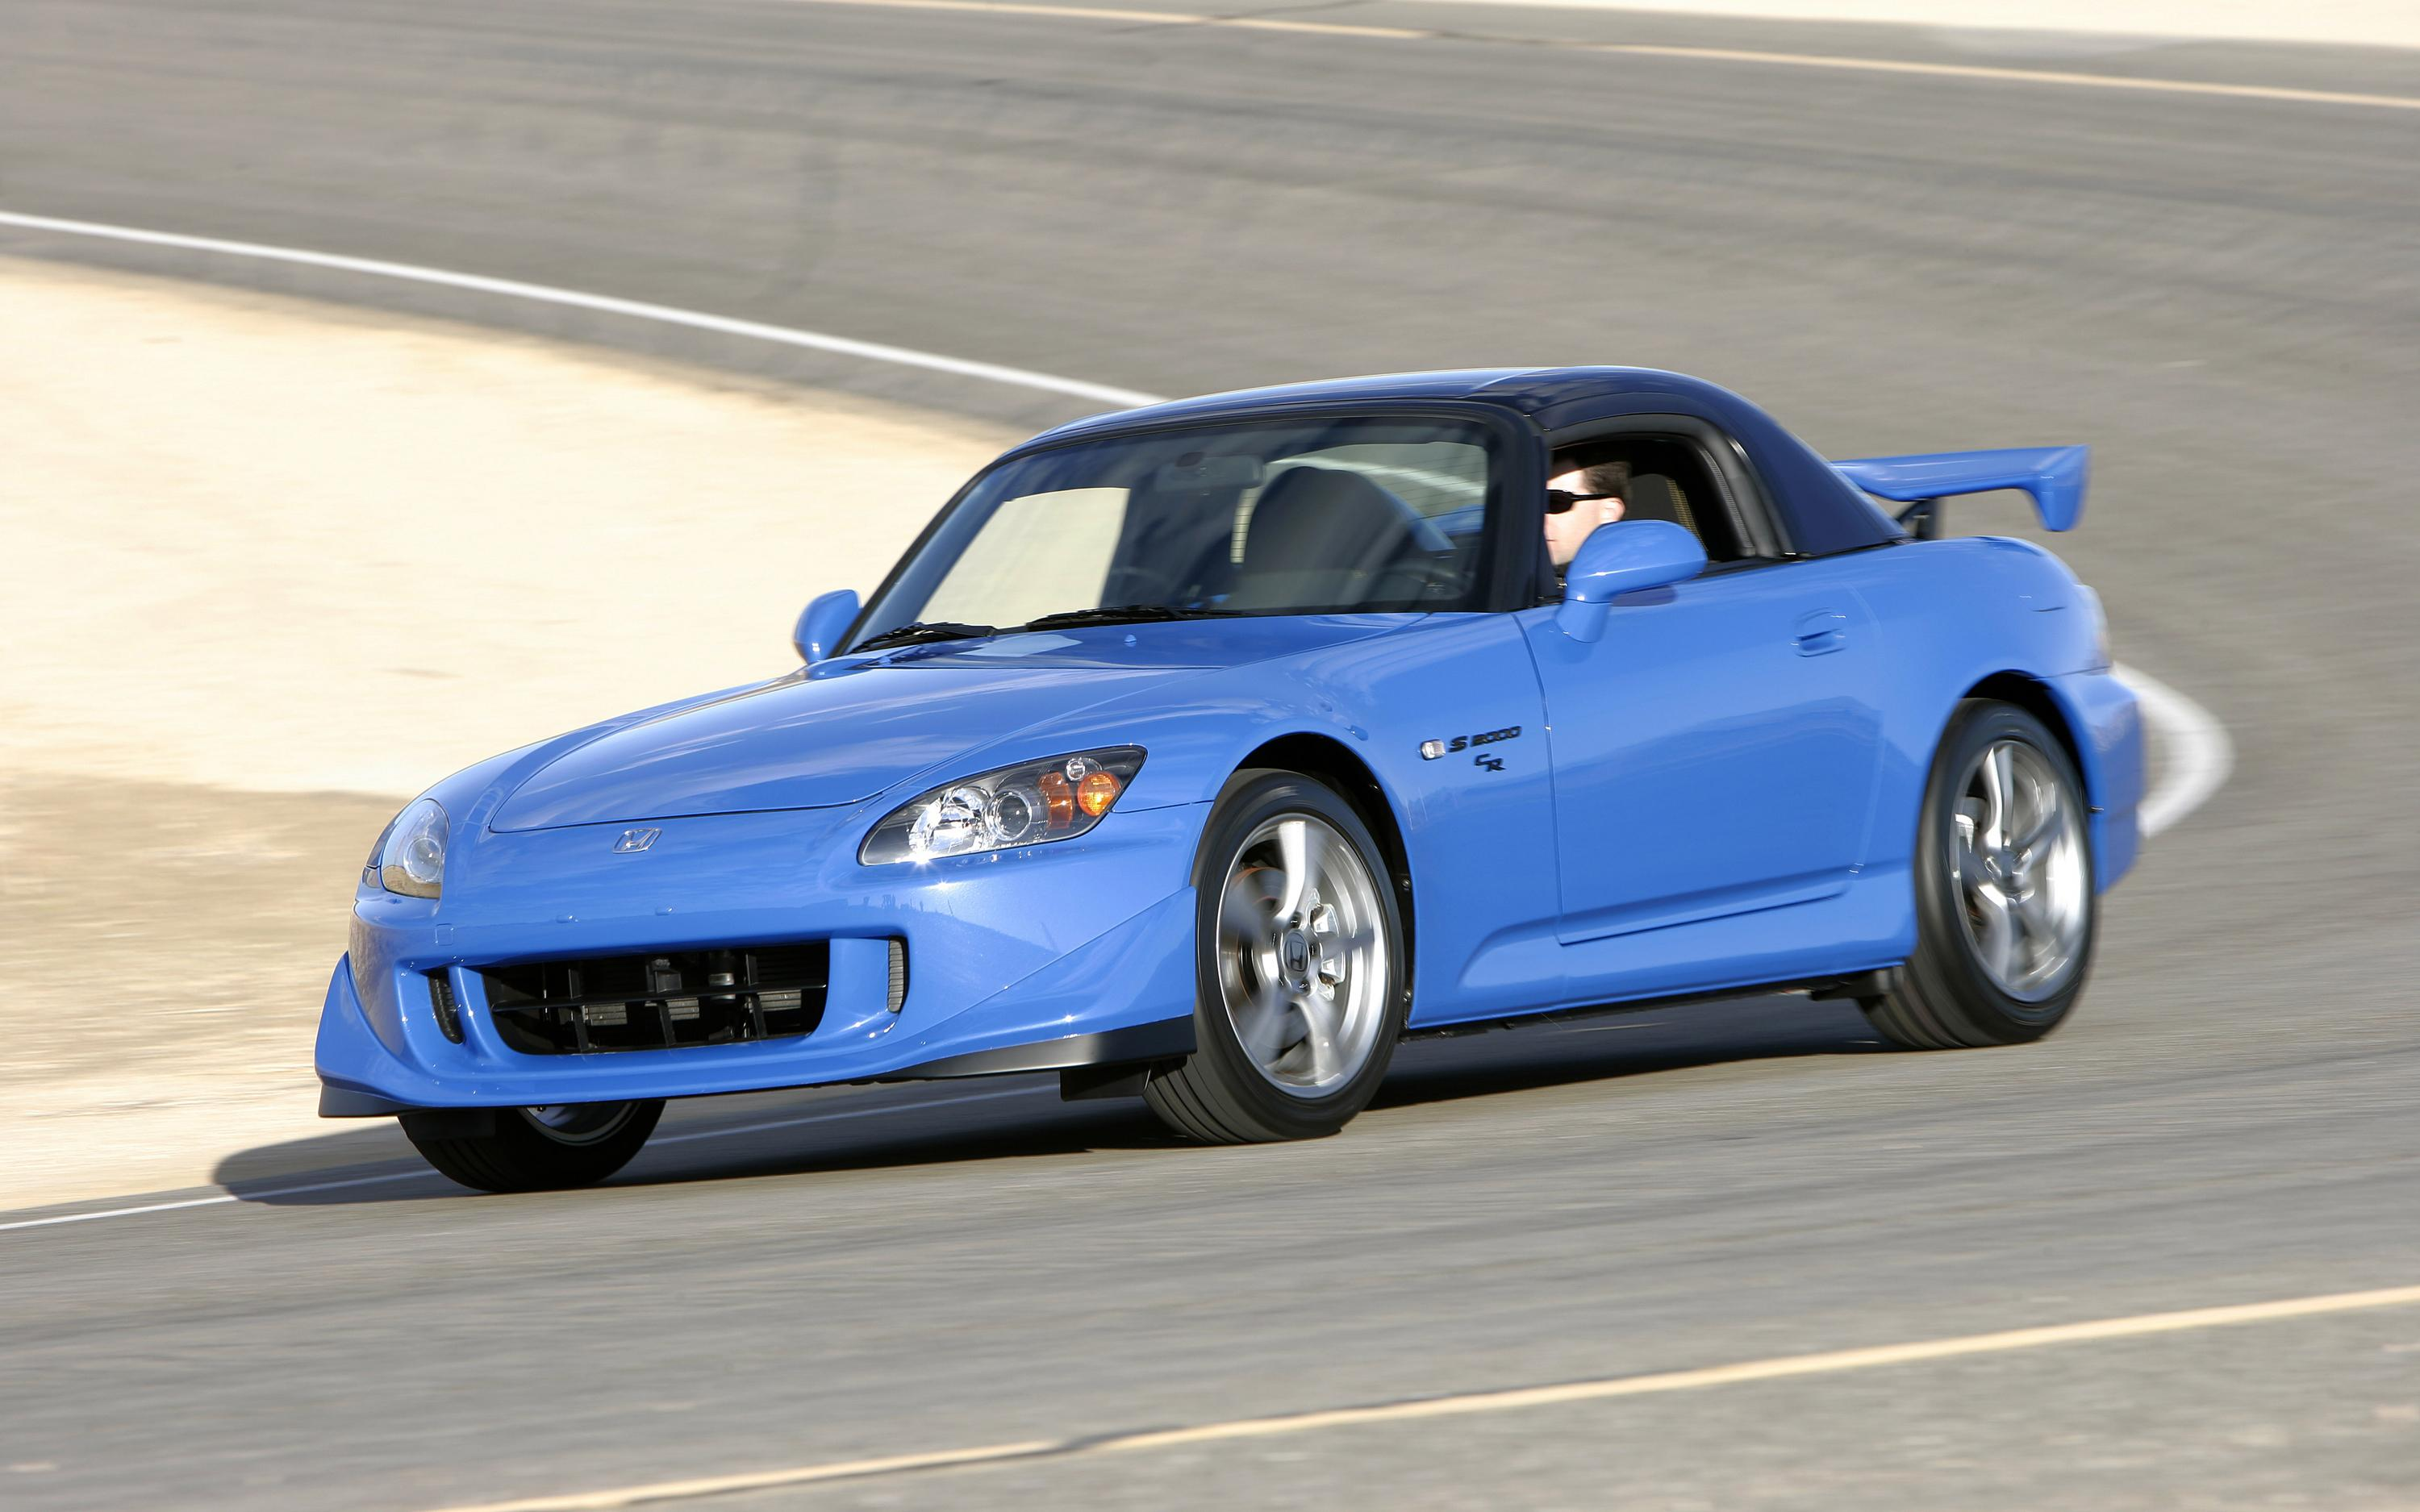 2009 Honda S2000 Cr Picture 12556